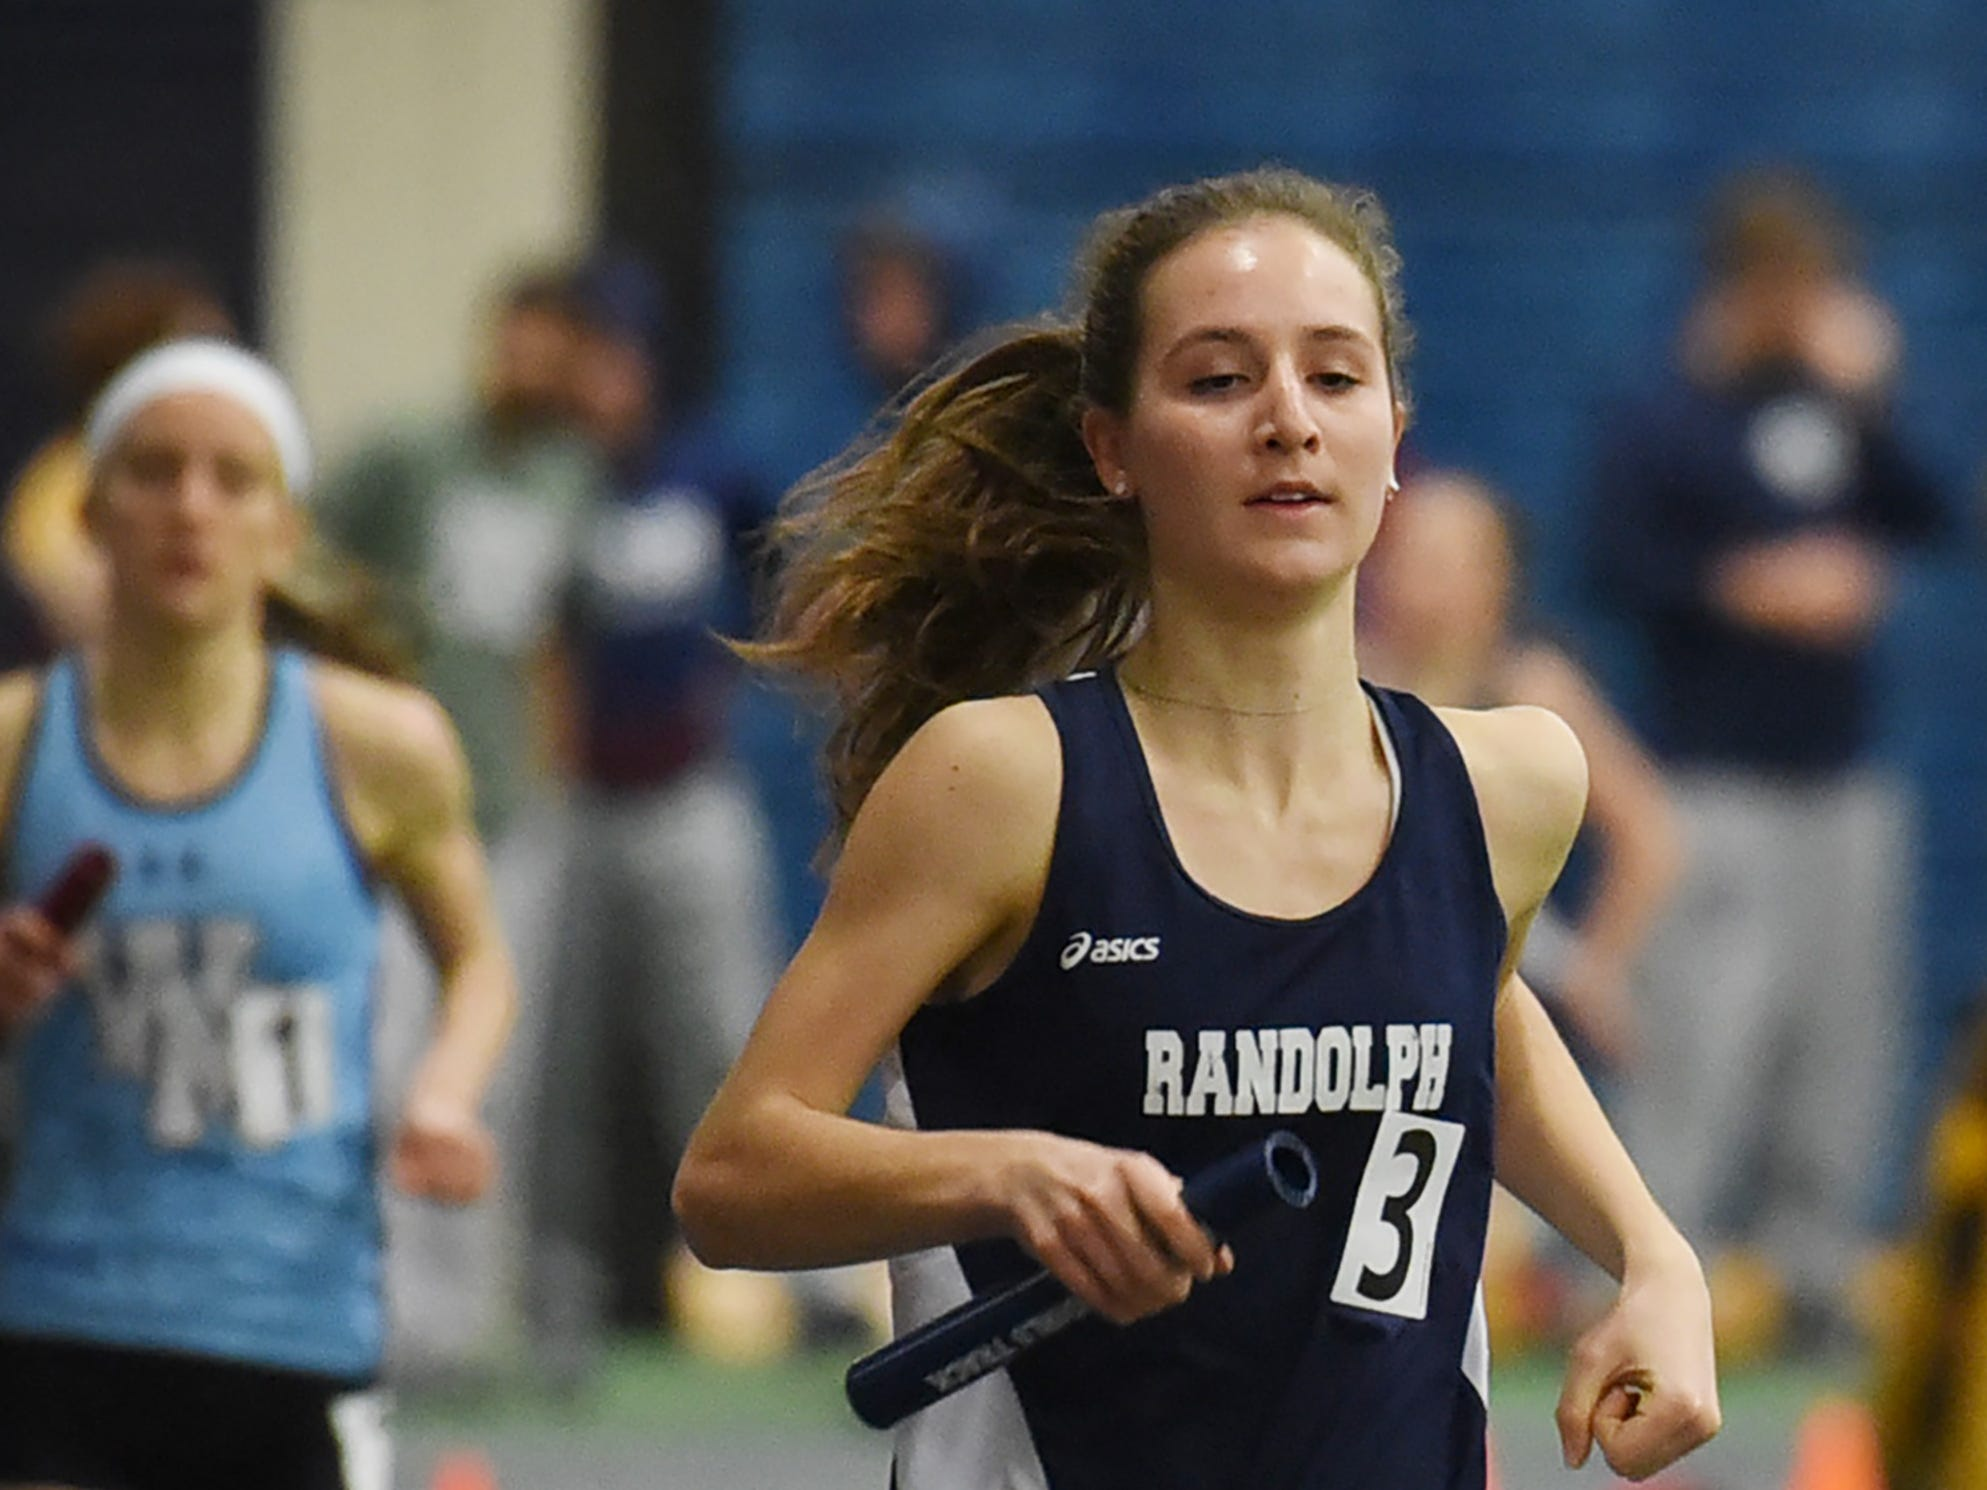 Randolph senior Abby Loveys crosses the line first in the distance medley at Morris County Relays at Drew University in Madison on 01/09/19.